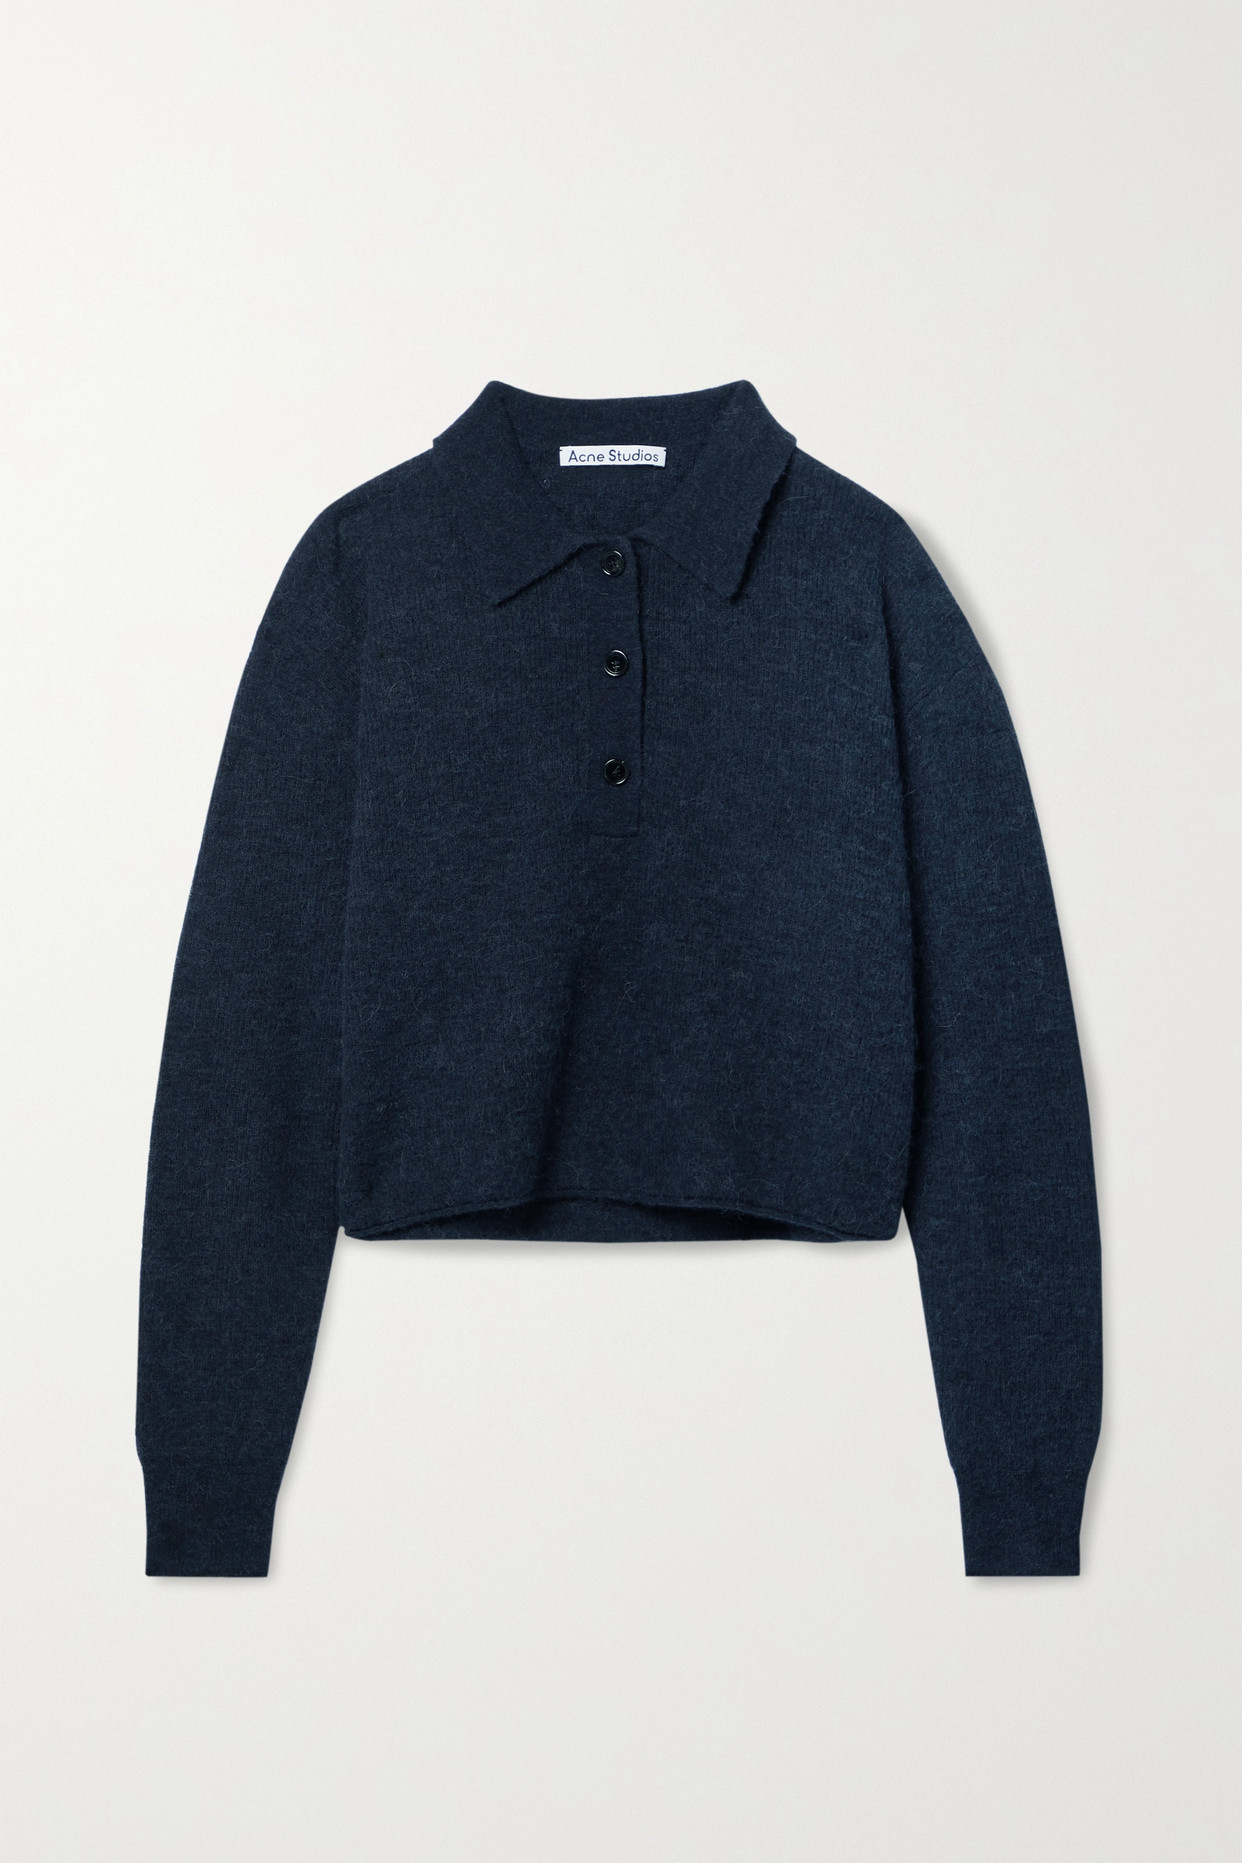 ACNE STUDIOS - Cropped Knitted Sweater - Gray - x small